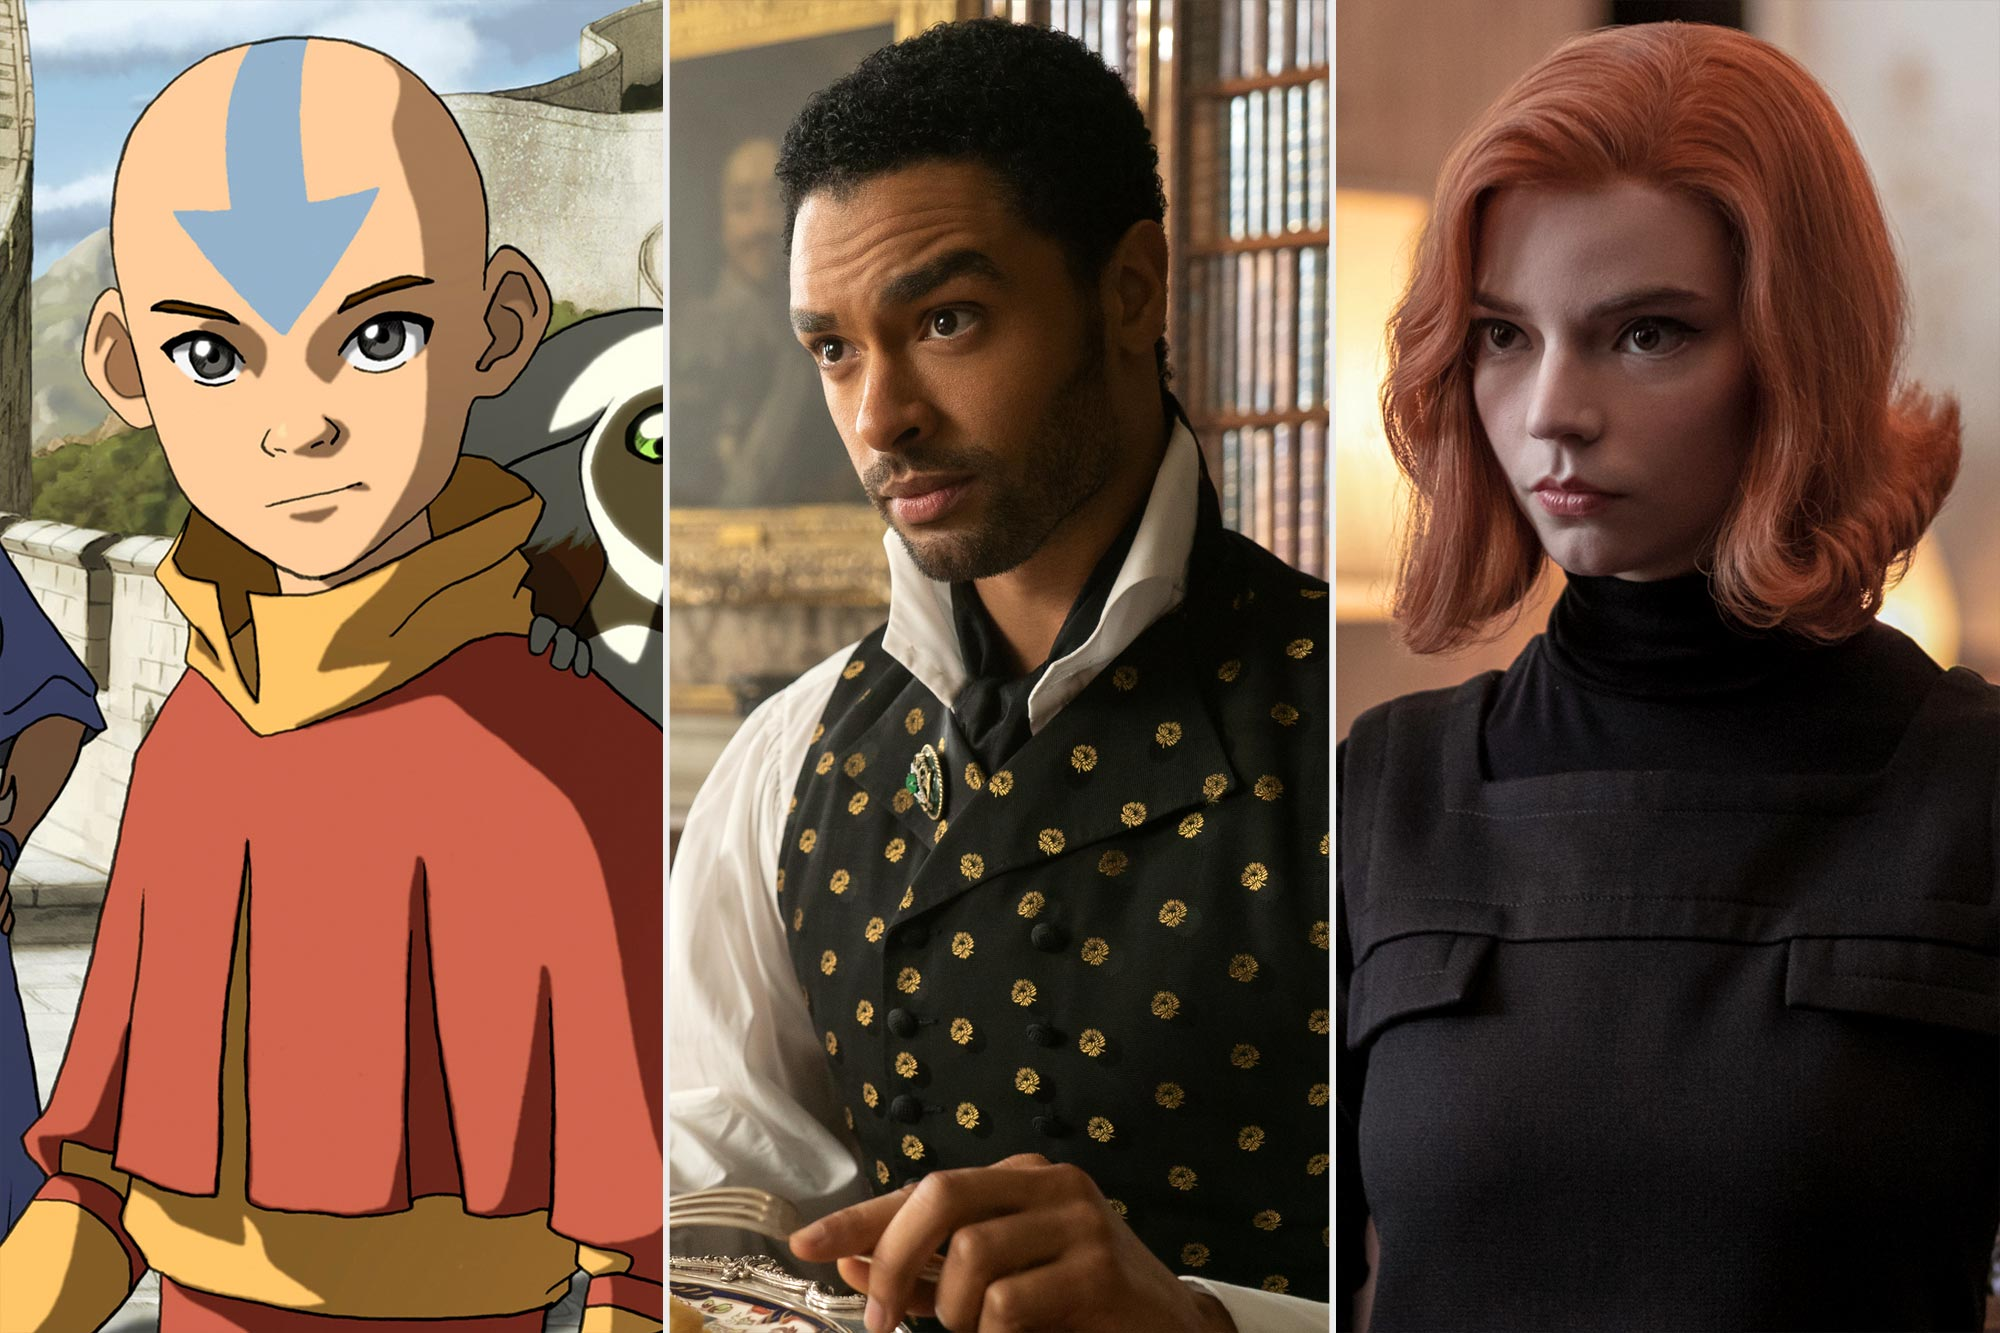 Best shows on Netflix- Avatar: The Last Airbender/Bridgerton/Queen's Gambit